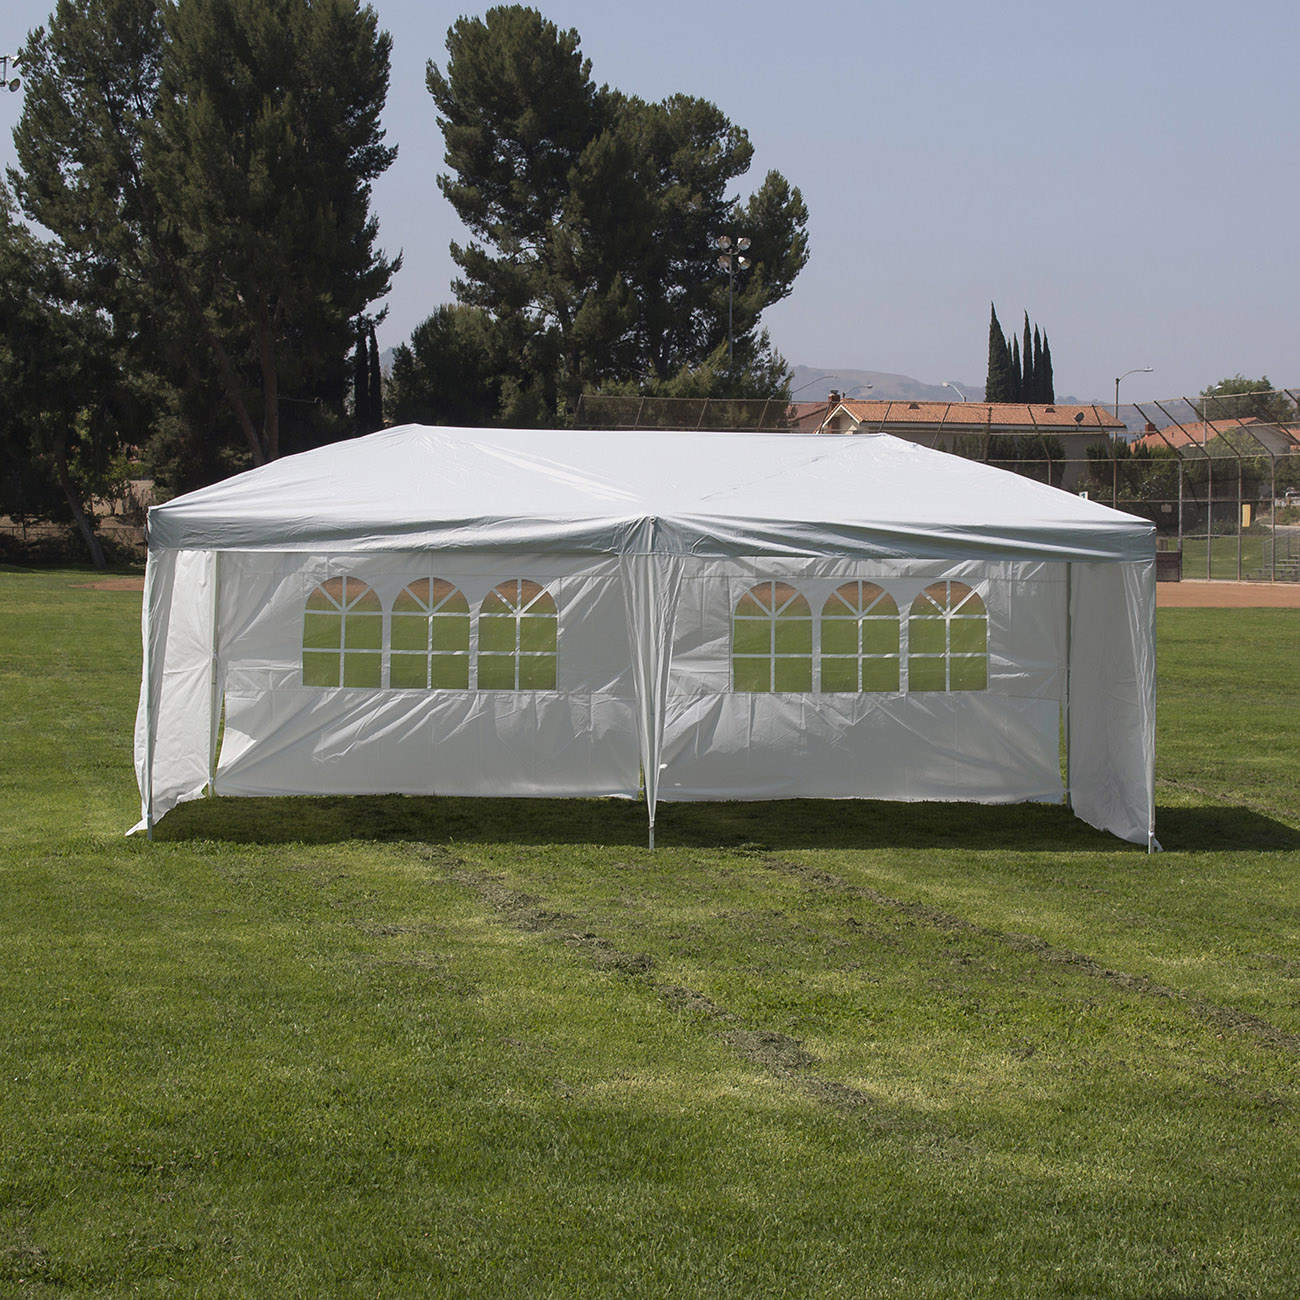 Portable Shelters Pop Up : Pop up tent walls instant shelter camping